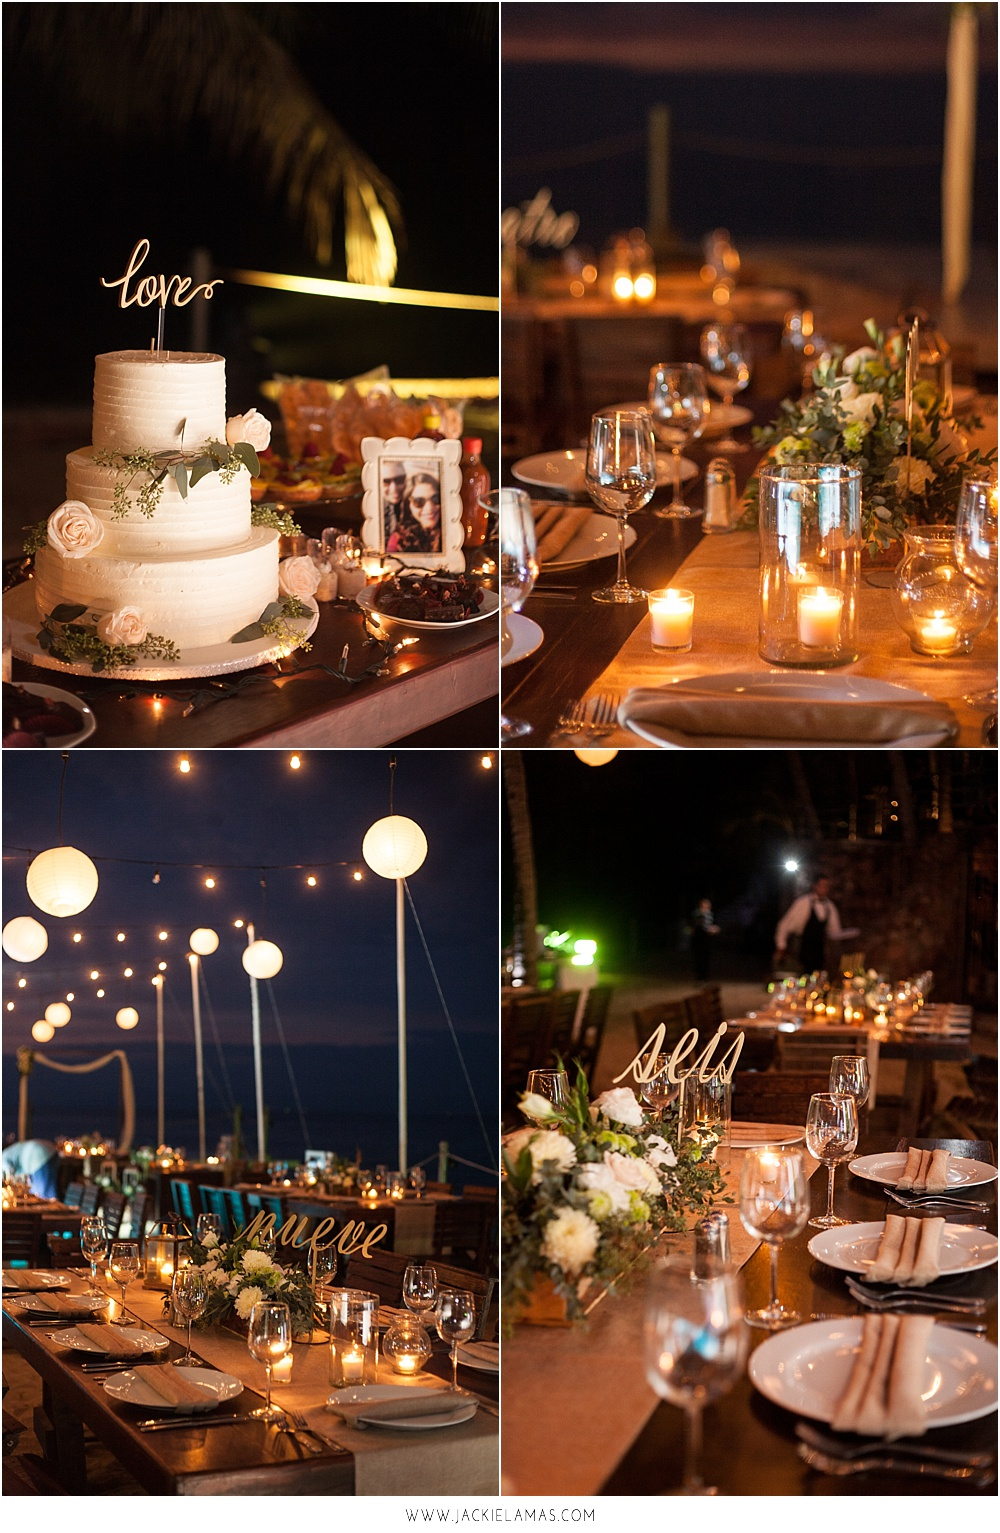 The two photos above are from the same wedding. A rustic beach wedding in Puerto Vallarta, Mexico